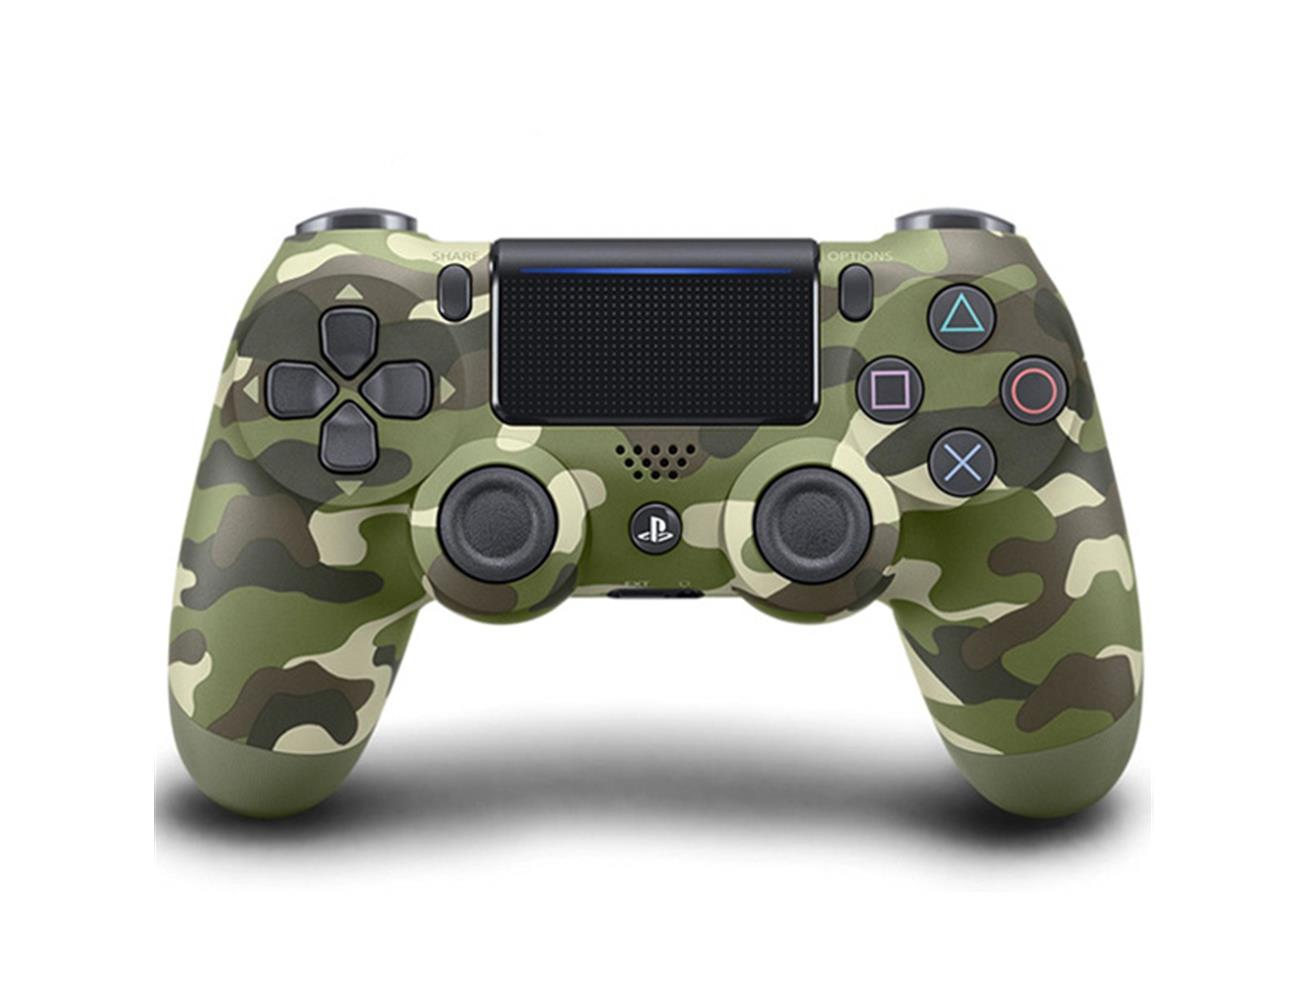 Sony Playstation Wireless Dual Shock 4 Controller For Ps4